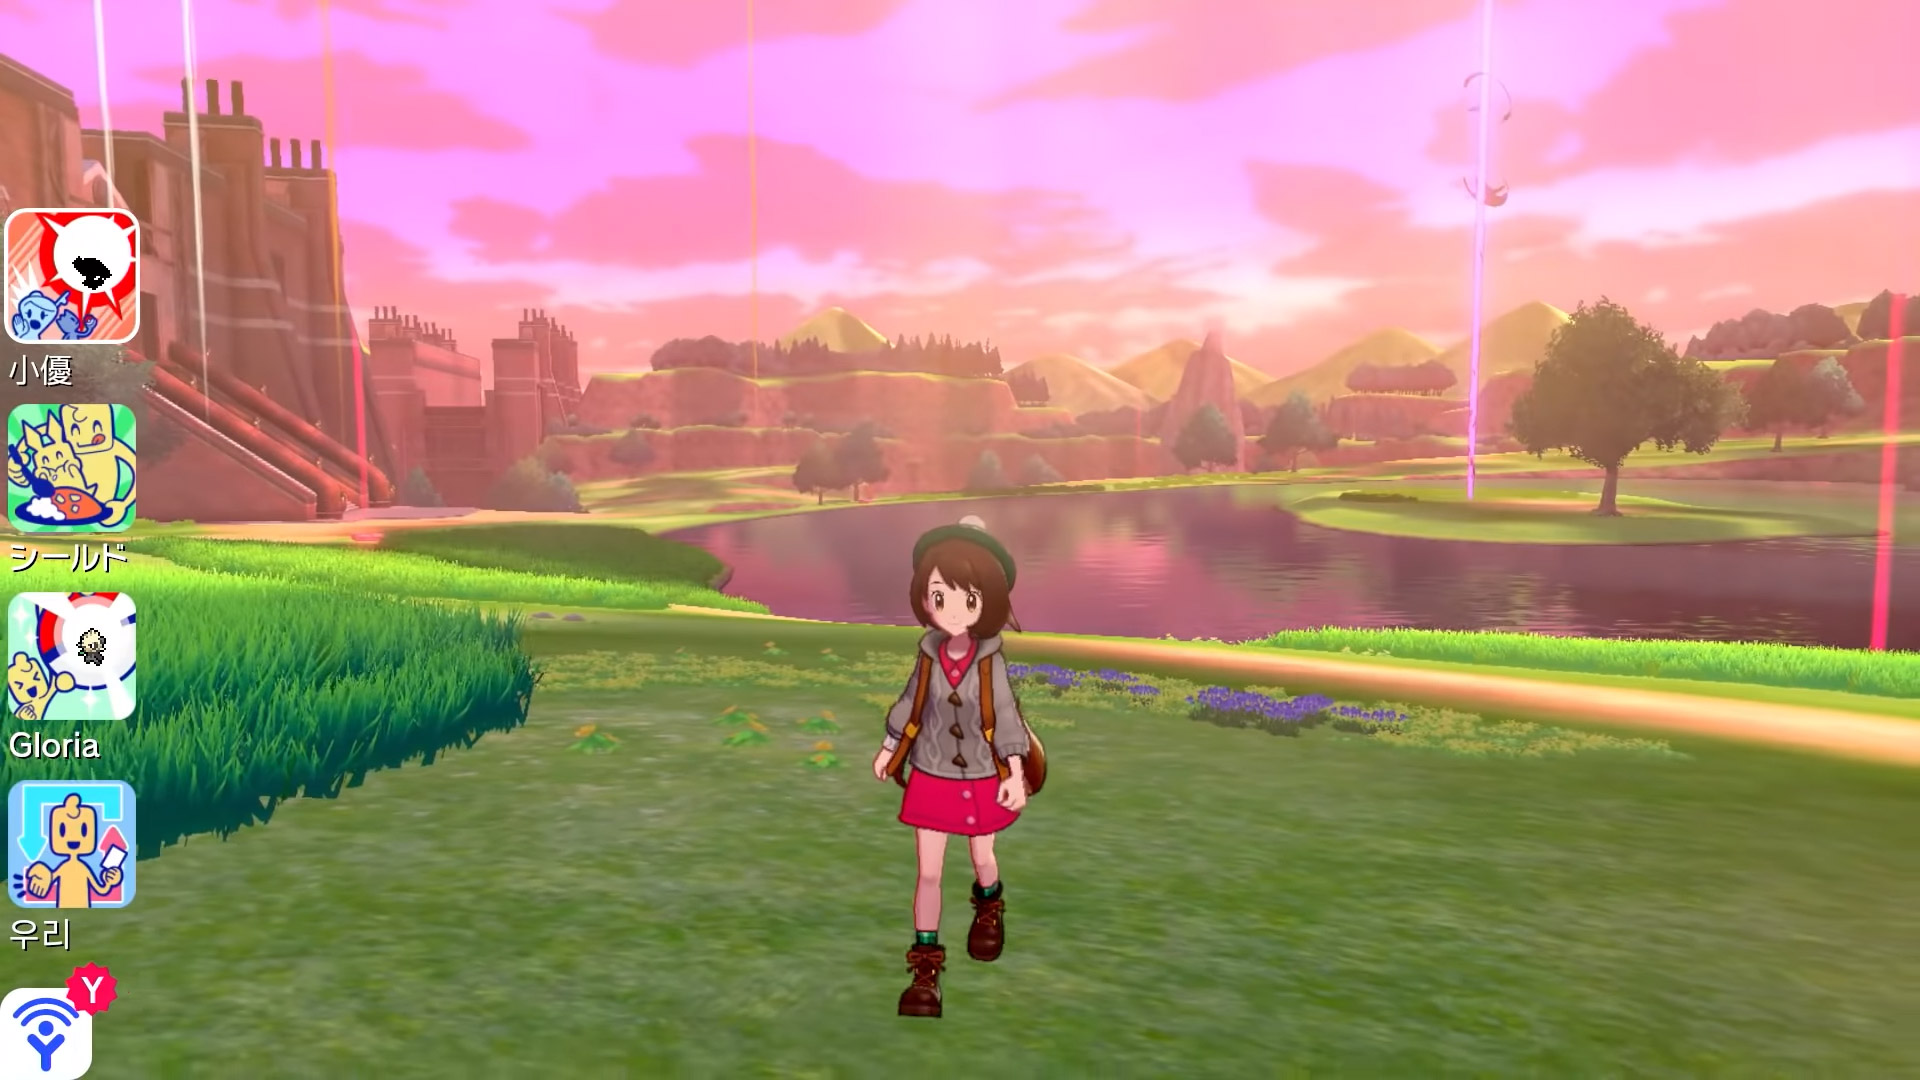 I can't stop dilly-dallying in the Pokemon Wild Area screenshot